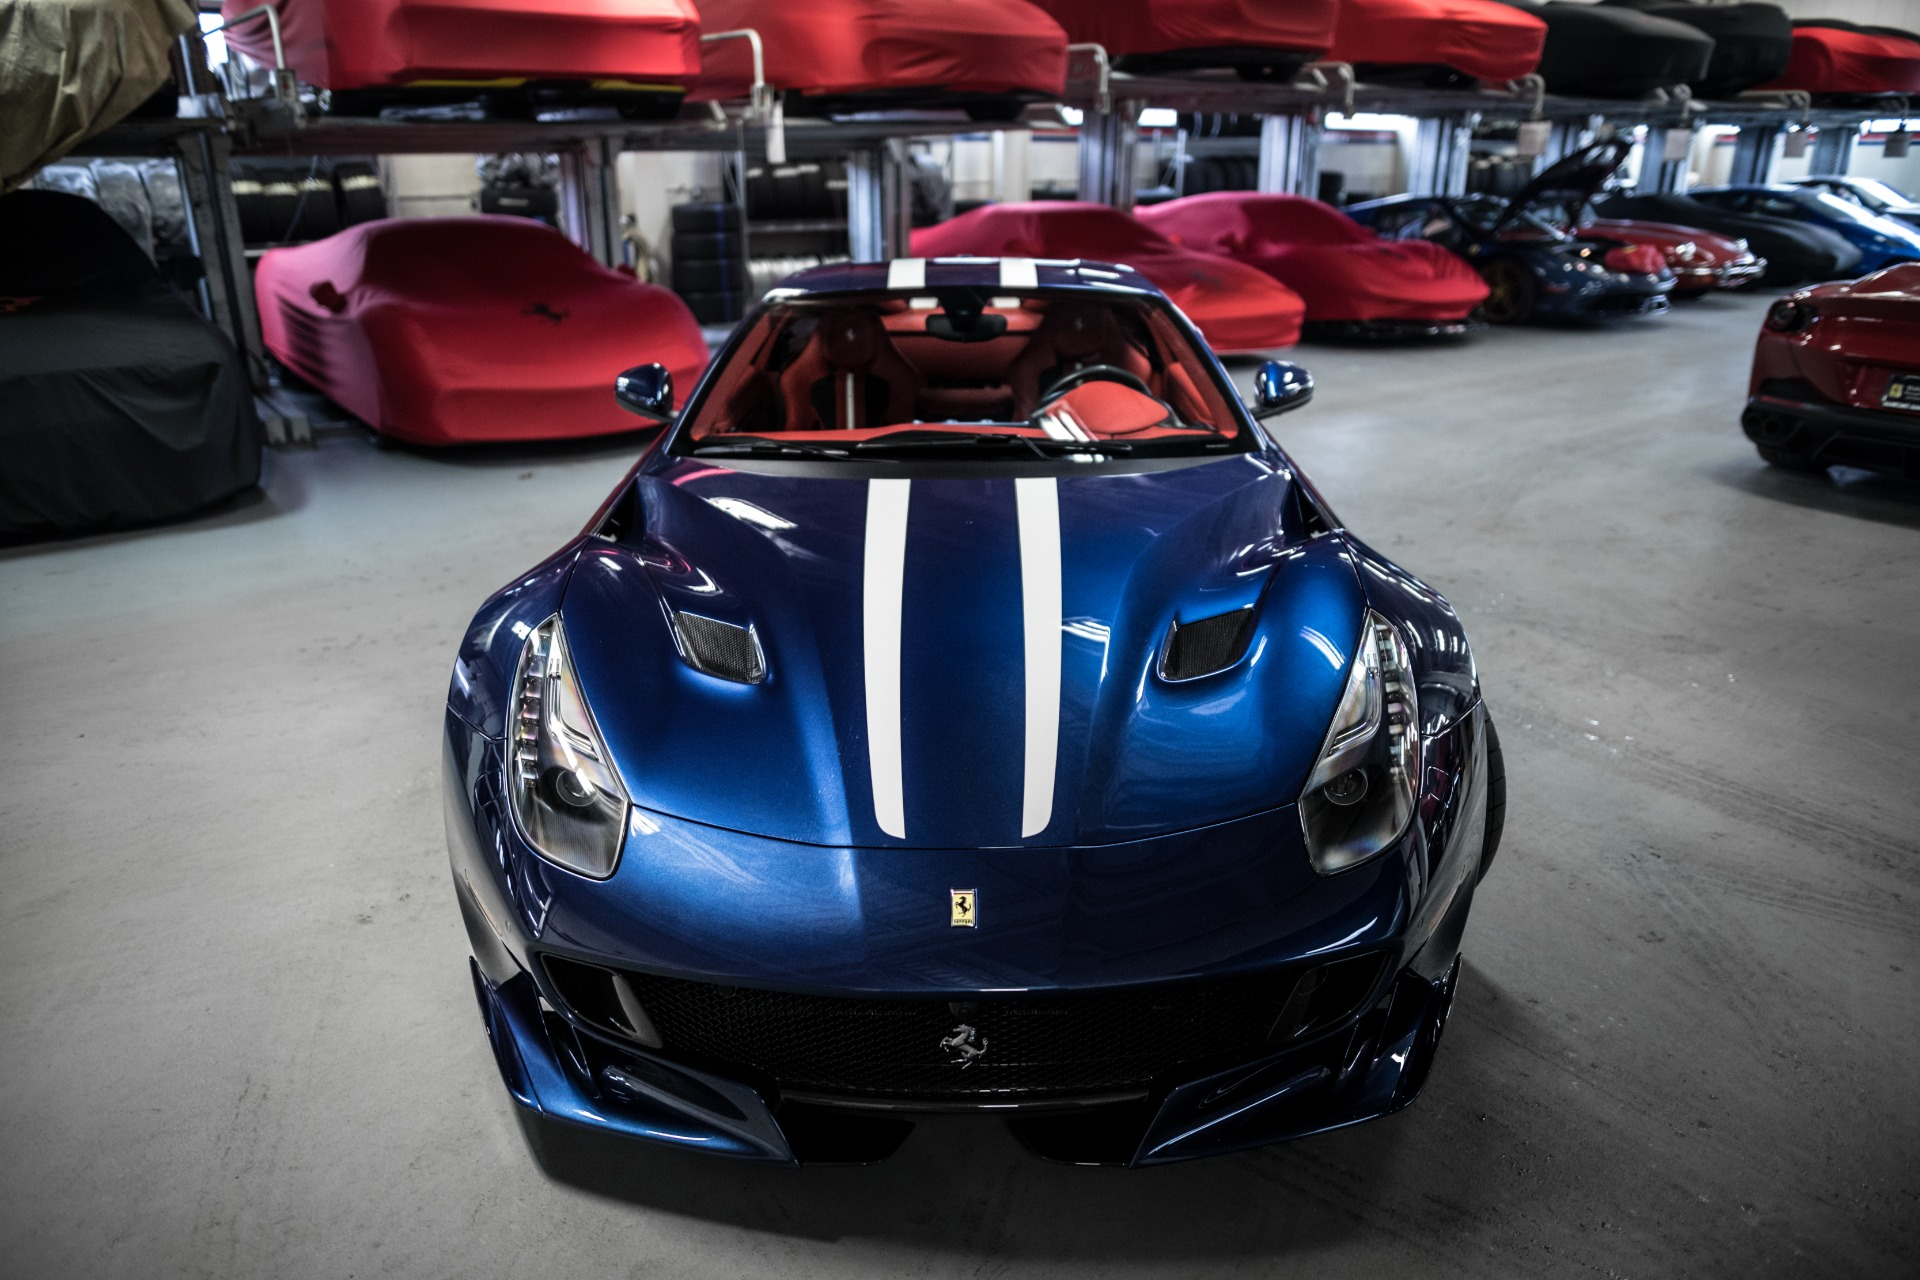 used 2017 ferrari f12 tdf for sale   1 450 000